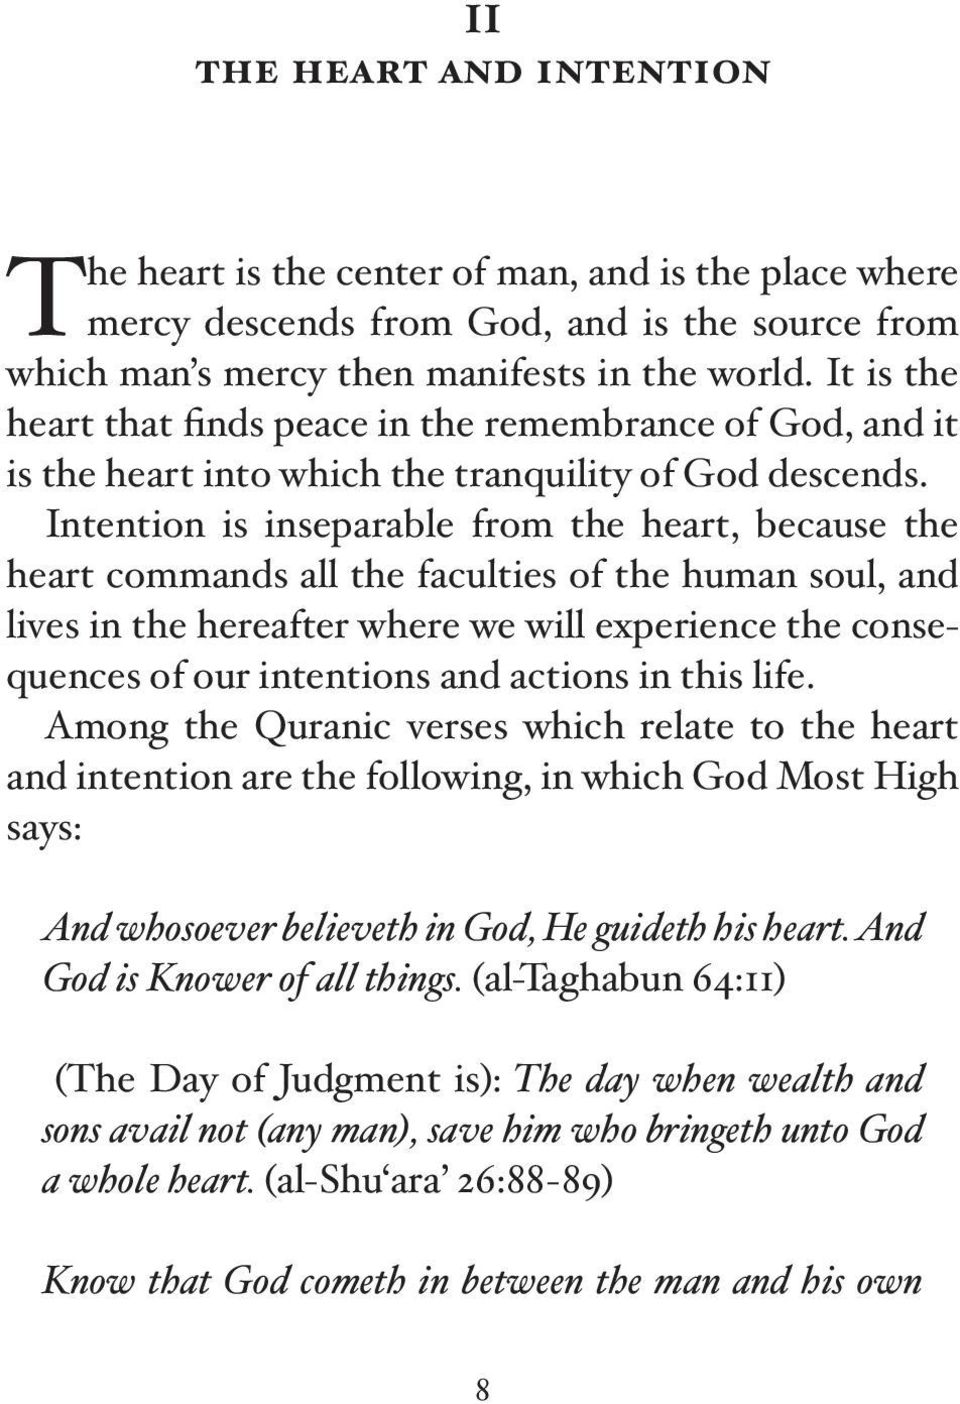 Intention is inseparable from the heart, because the heart commands all the faculties of the human soul, and lives in the hereafter where we will experience the consequences of our intentions and